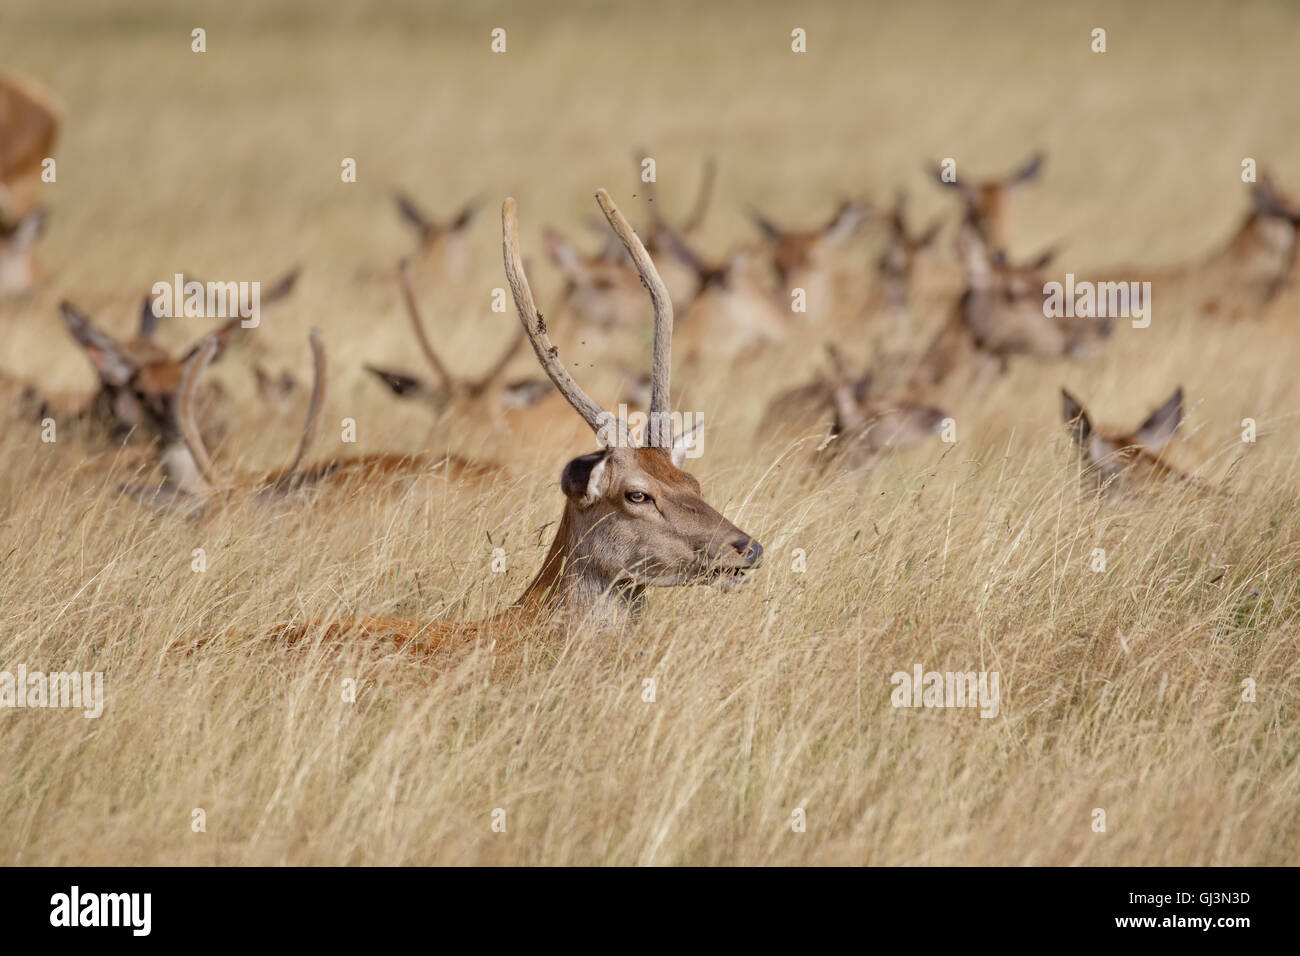 Young Red Deer stag (Cervus elaphus) with herd behind in long grass - Stock Image